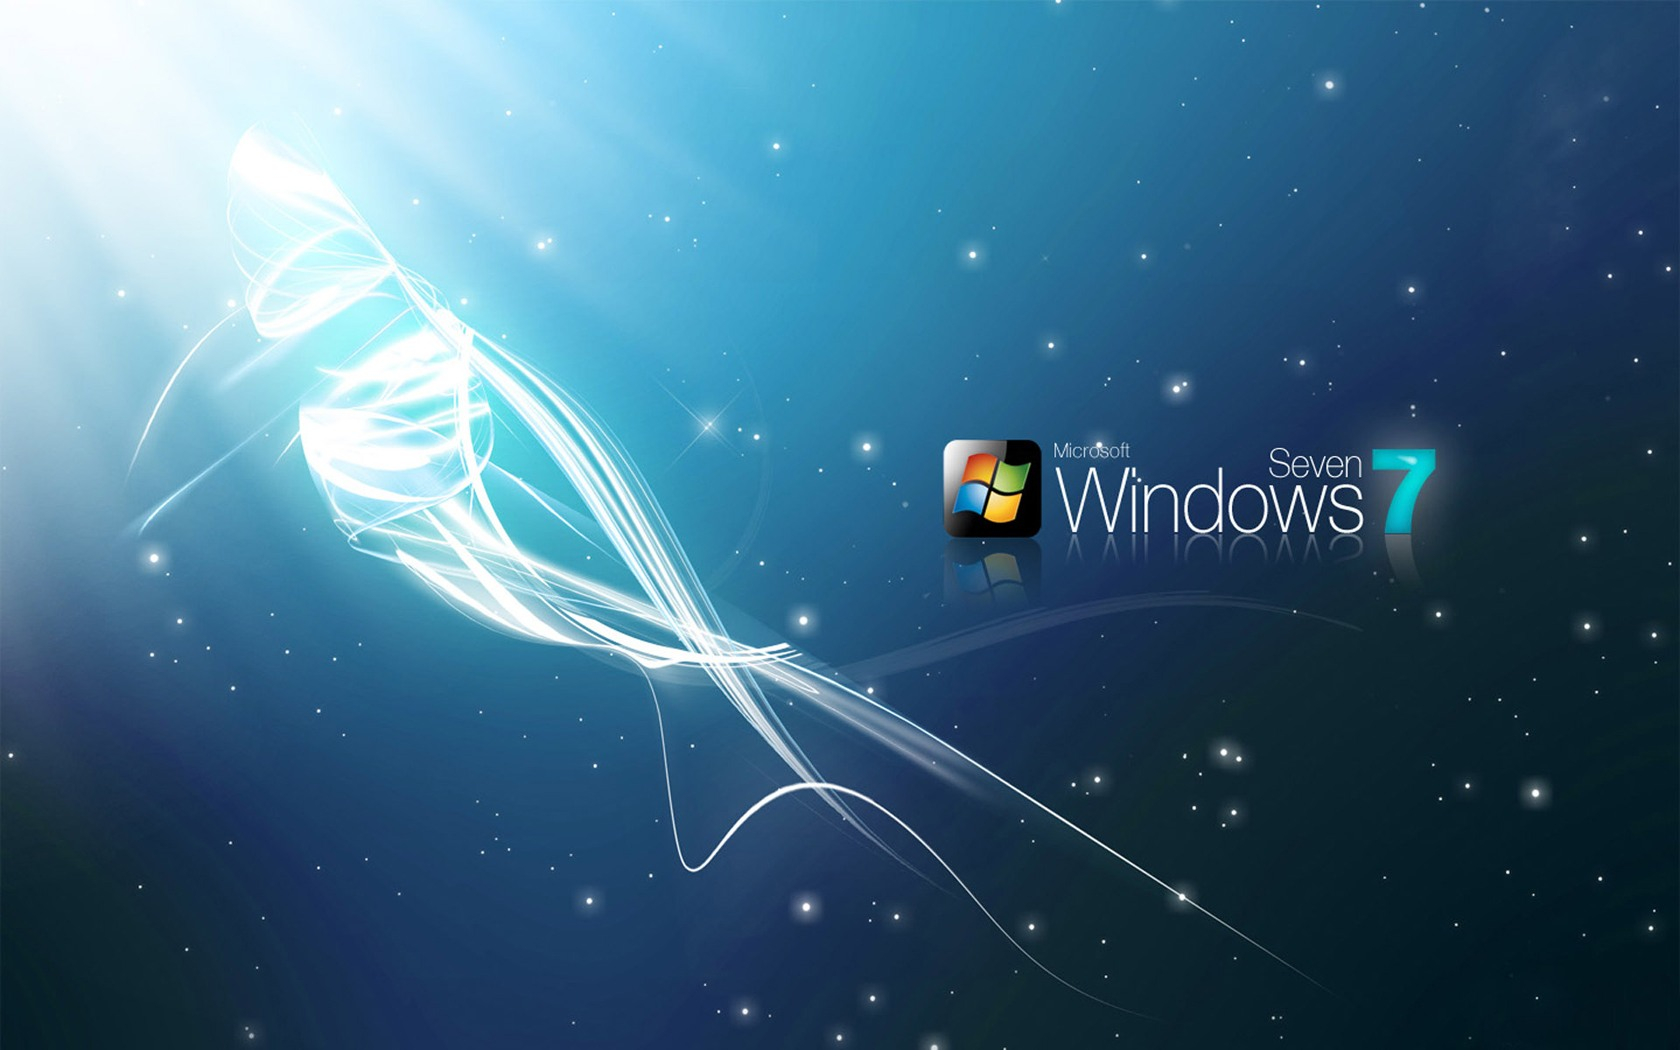 windows seven abstract cg wallpapers1680 1050 38